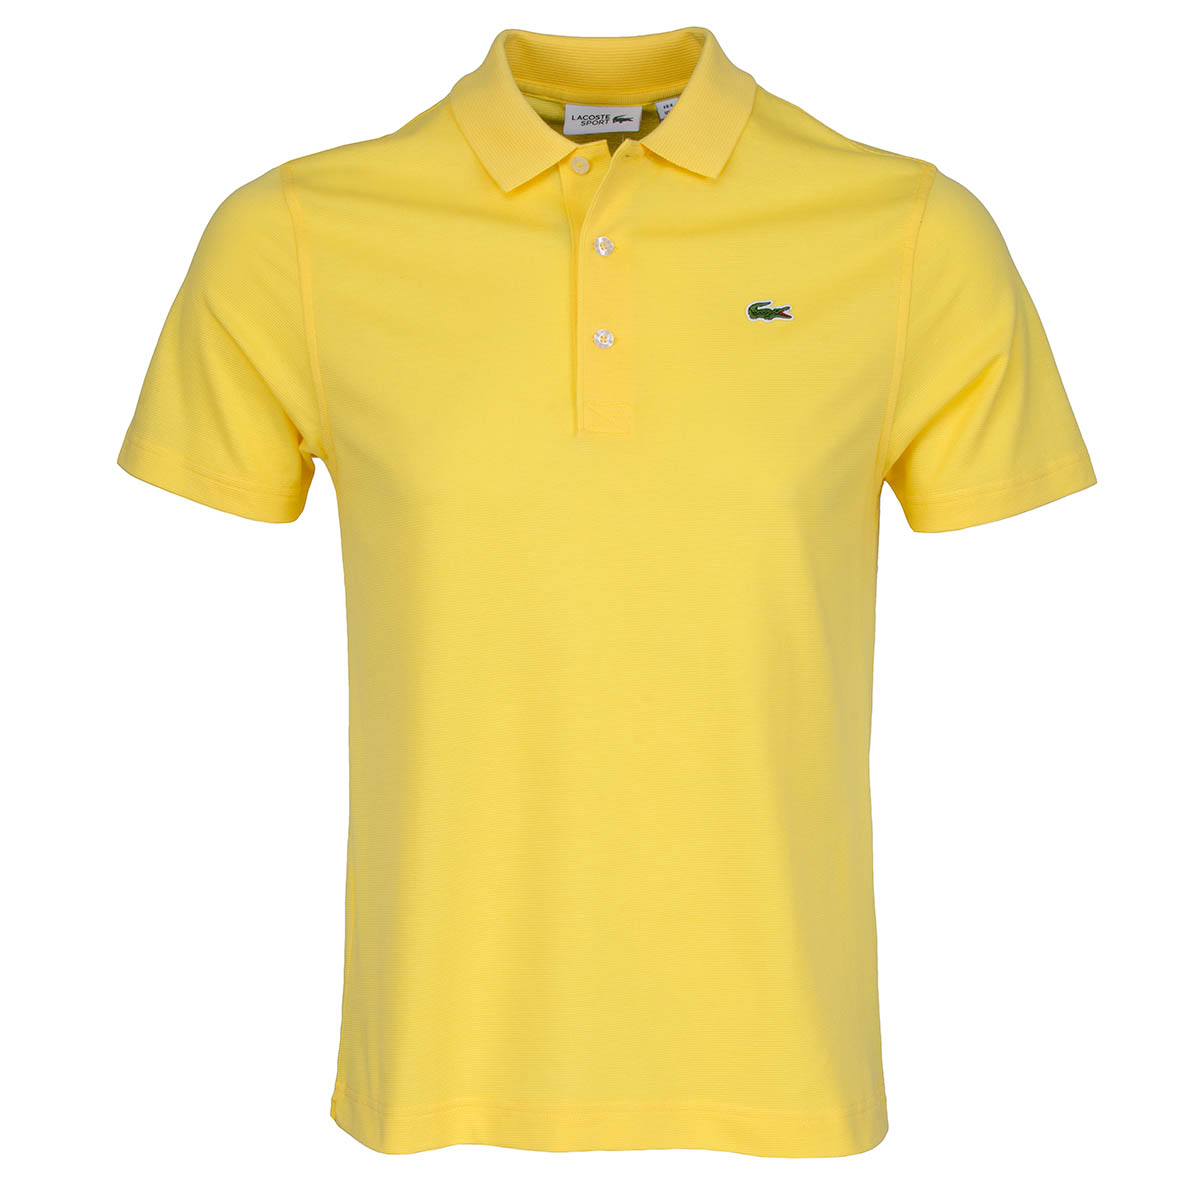 Lacoste sport polo shirt sunfire yellow scottsdale golf for Yellow golf polo shirts